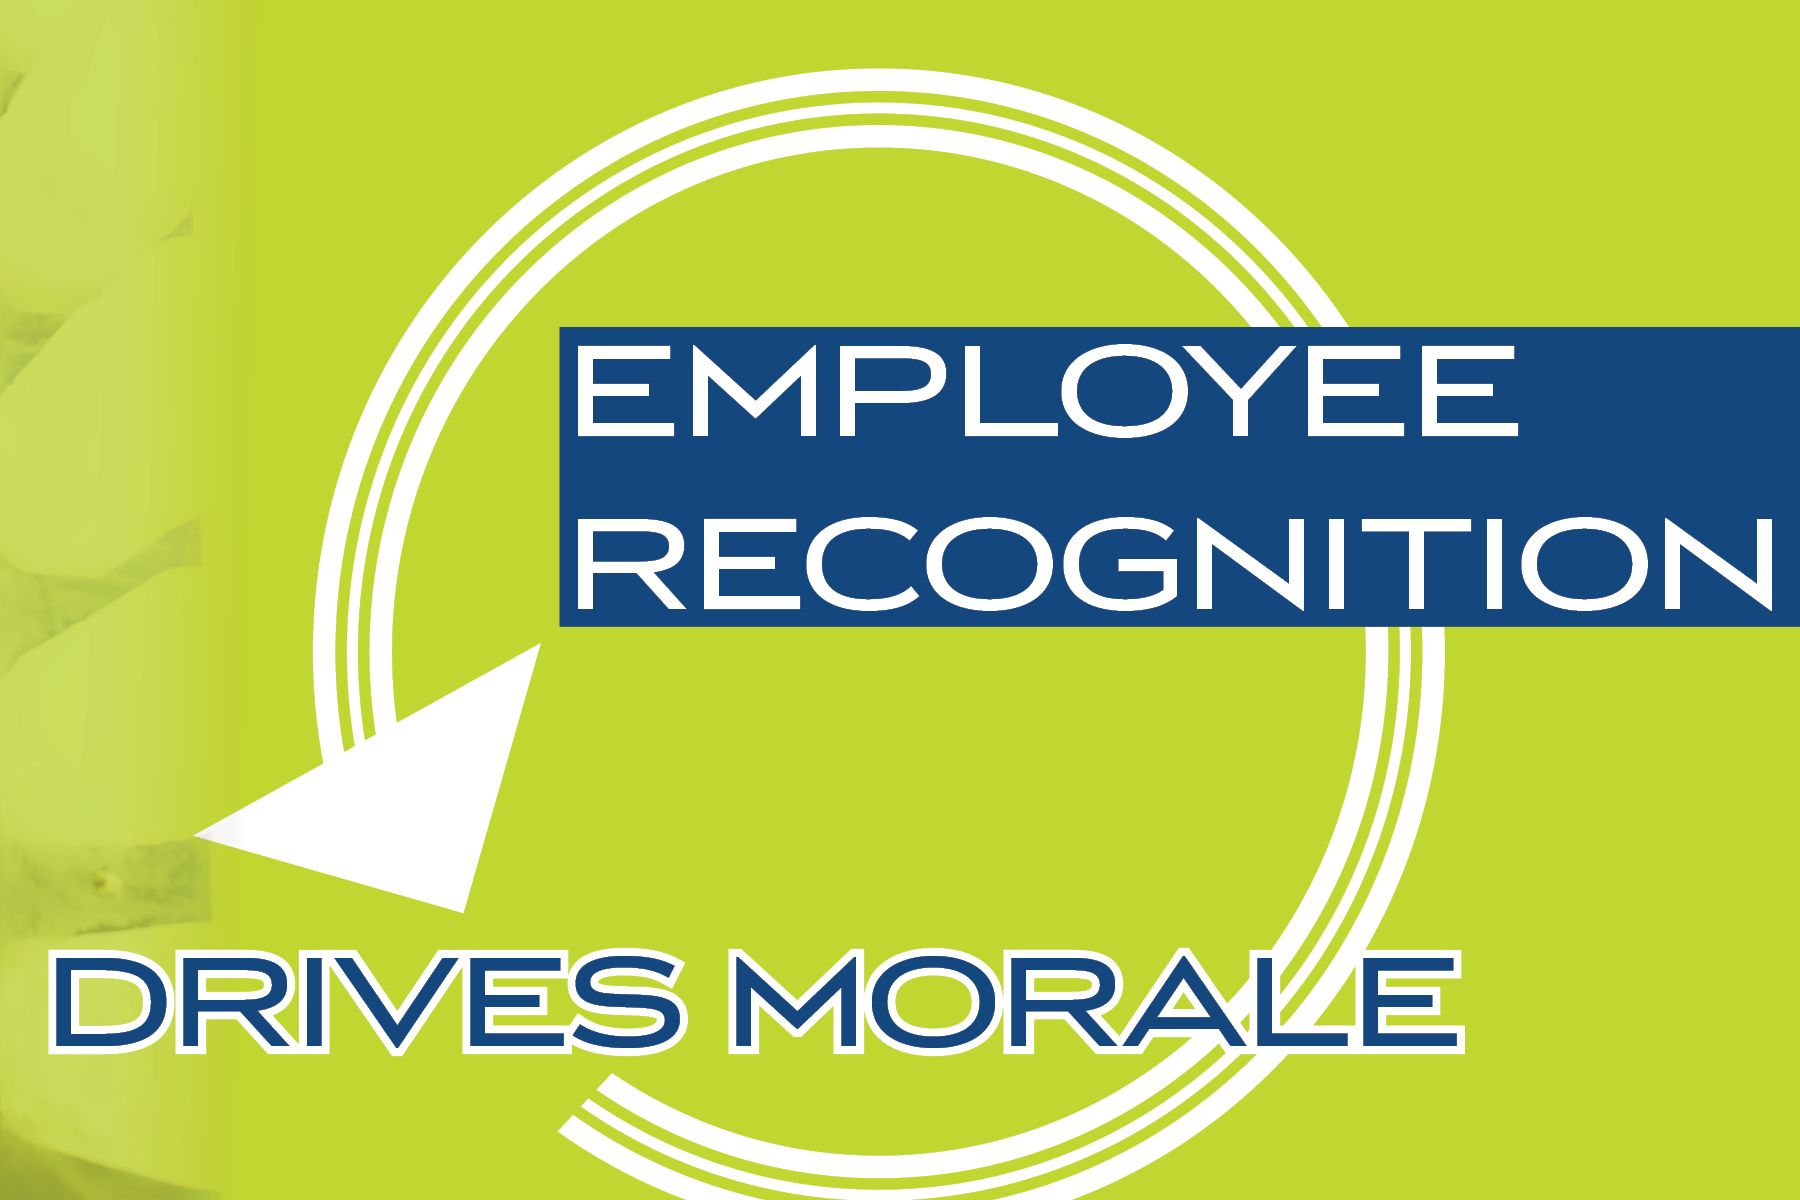 Terryberry Offers These Sample Employee Recognition Letters To